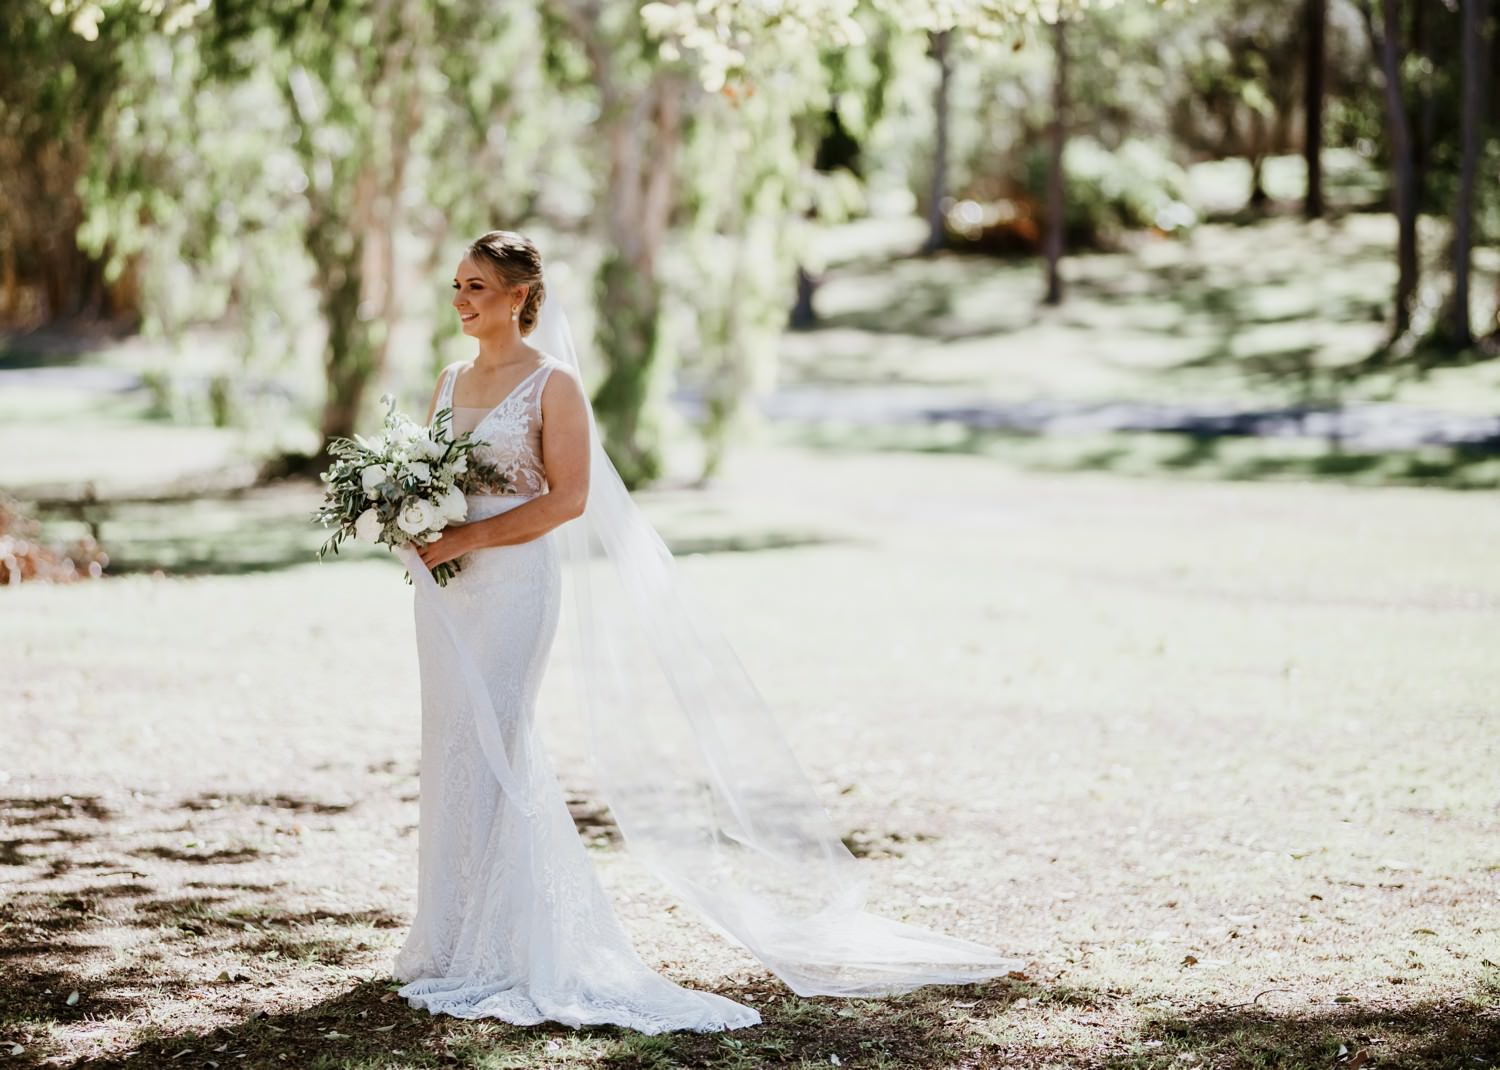 Bride with veil and white bouquet